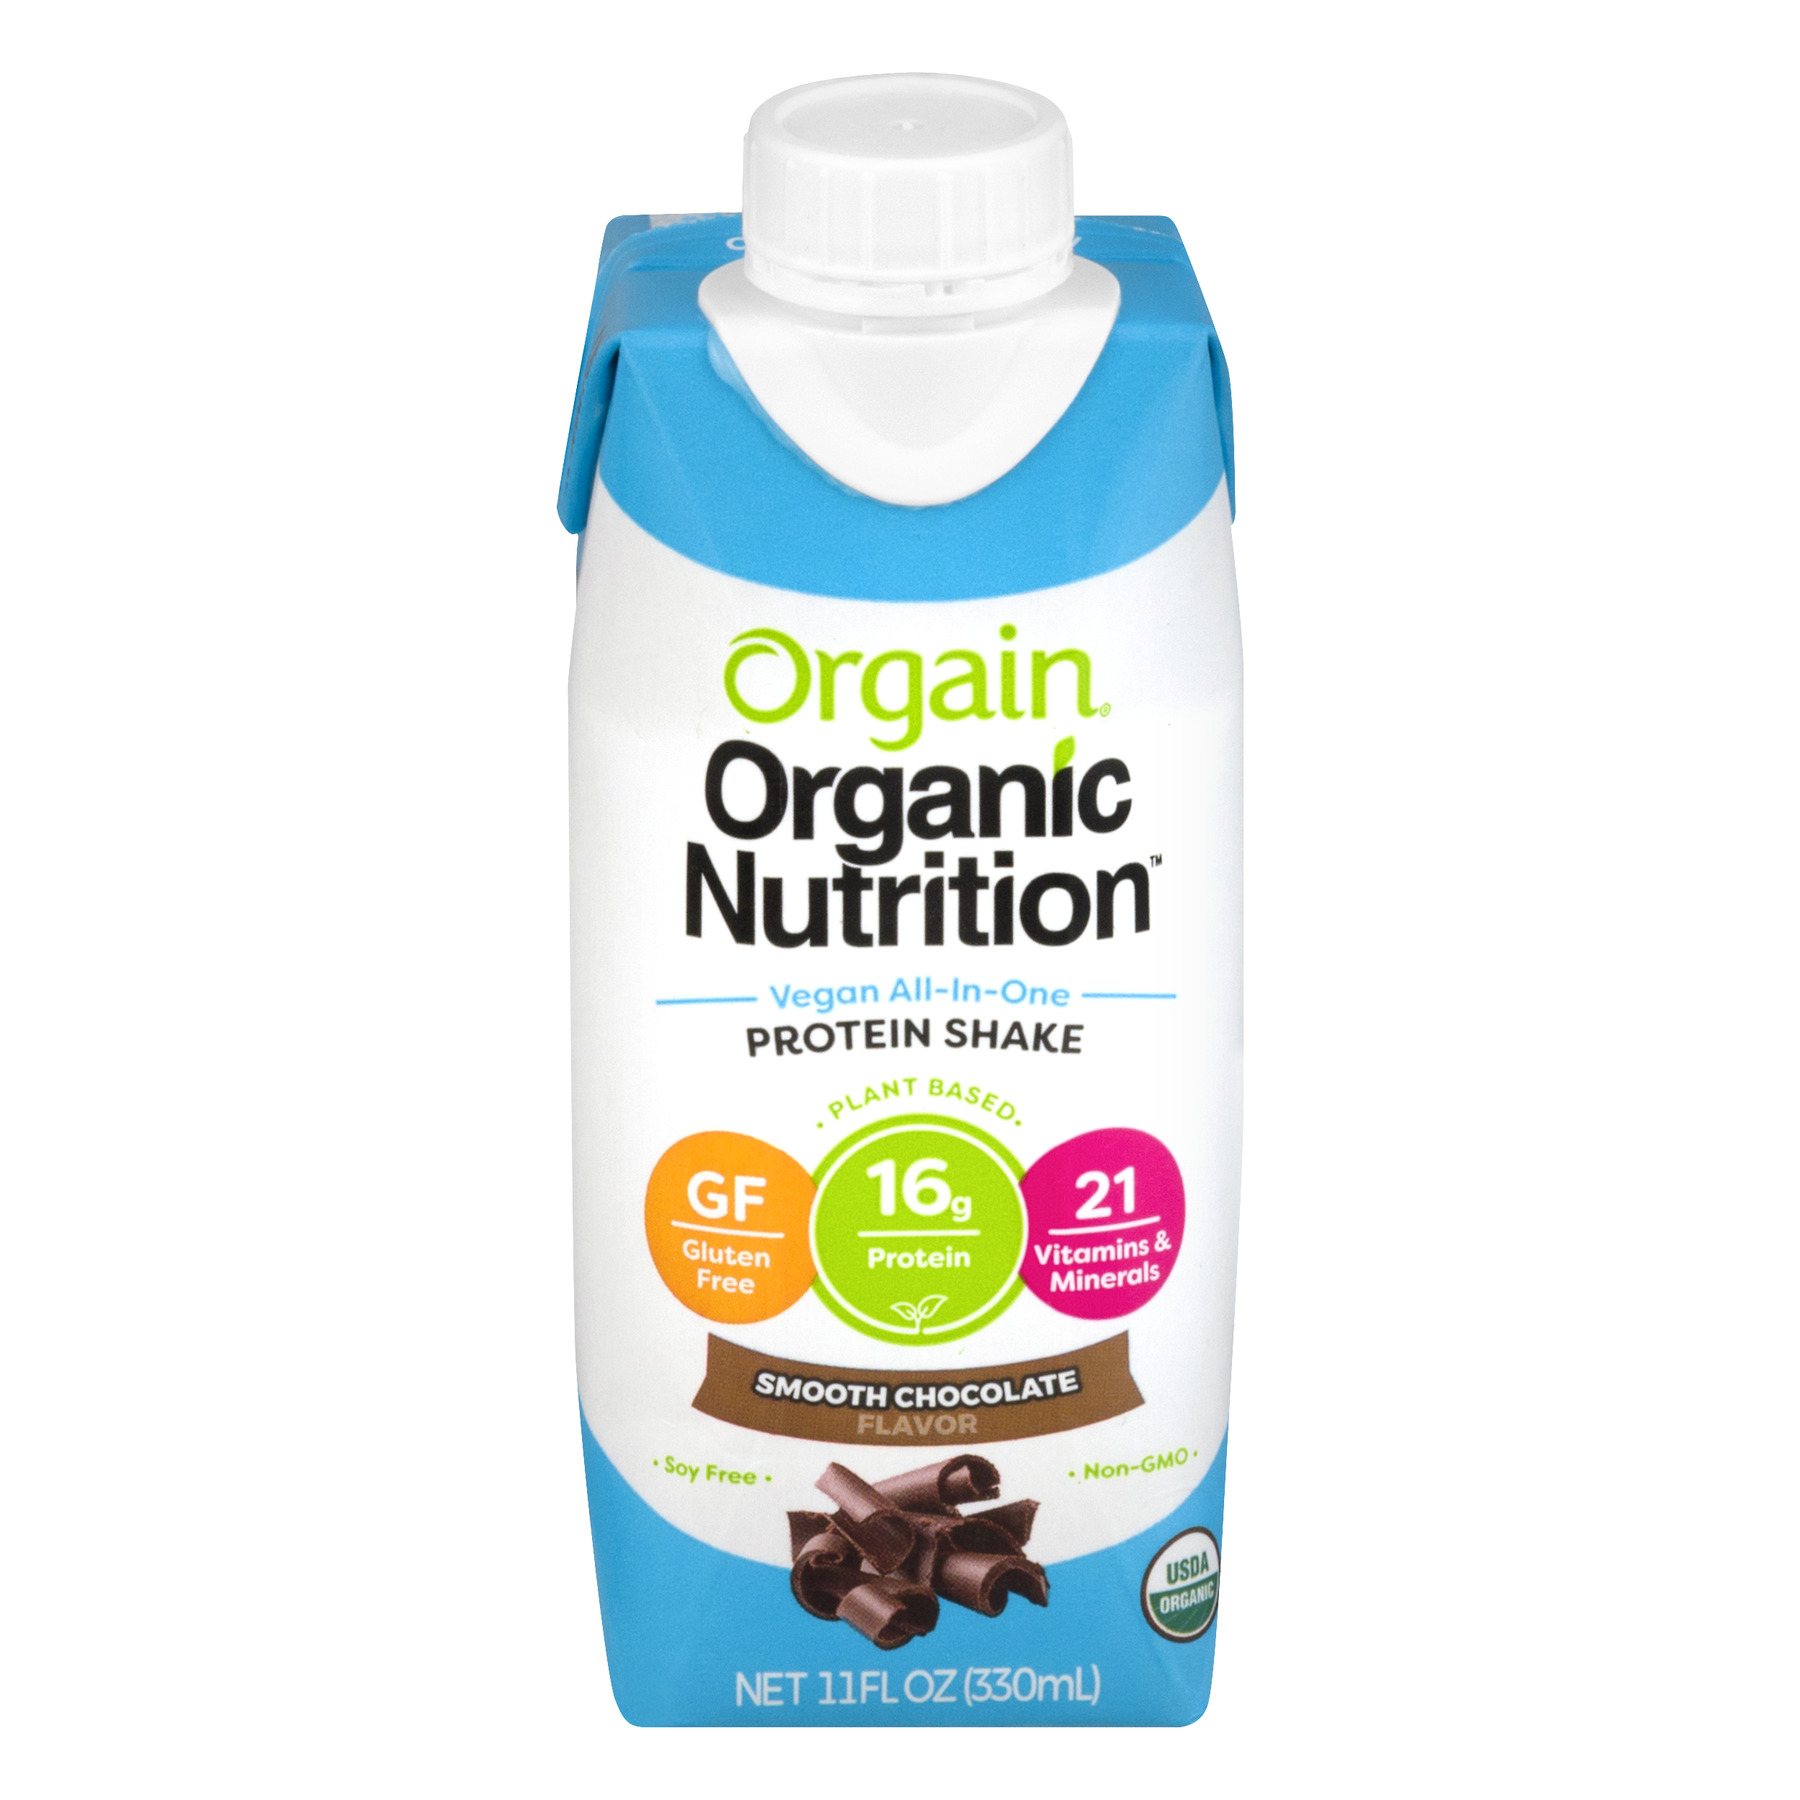 Orgain Organic Nutrition Protein Shake Smooth Chocolate, 11.0 FL OZ